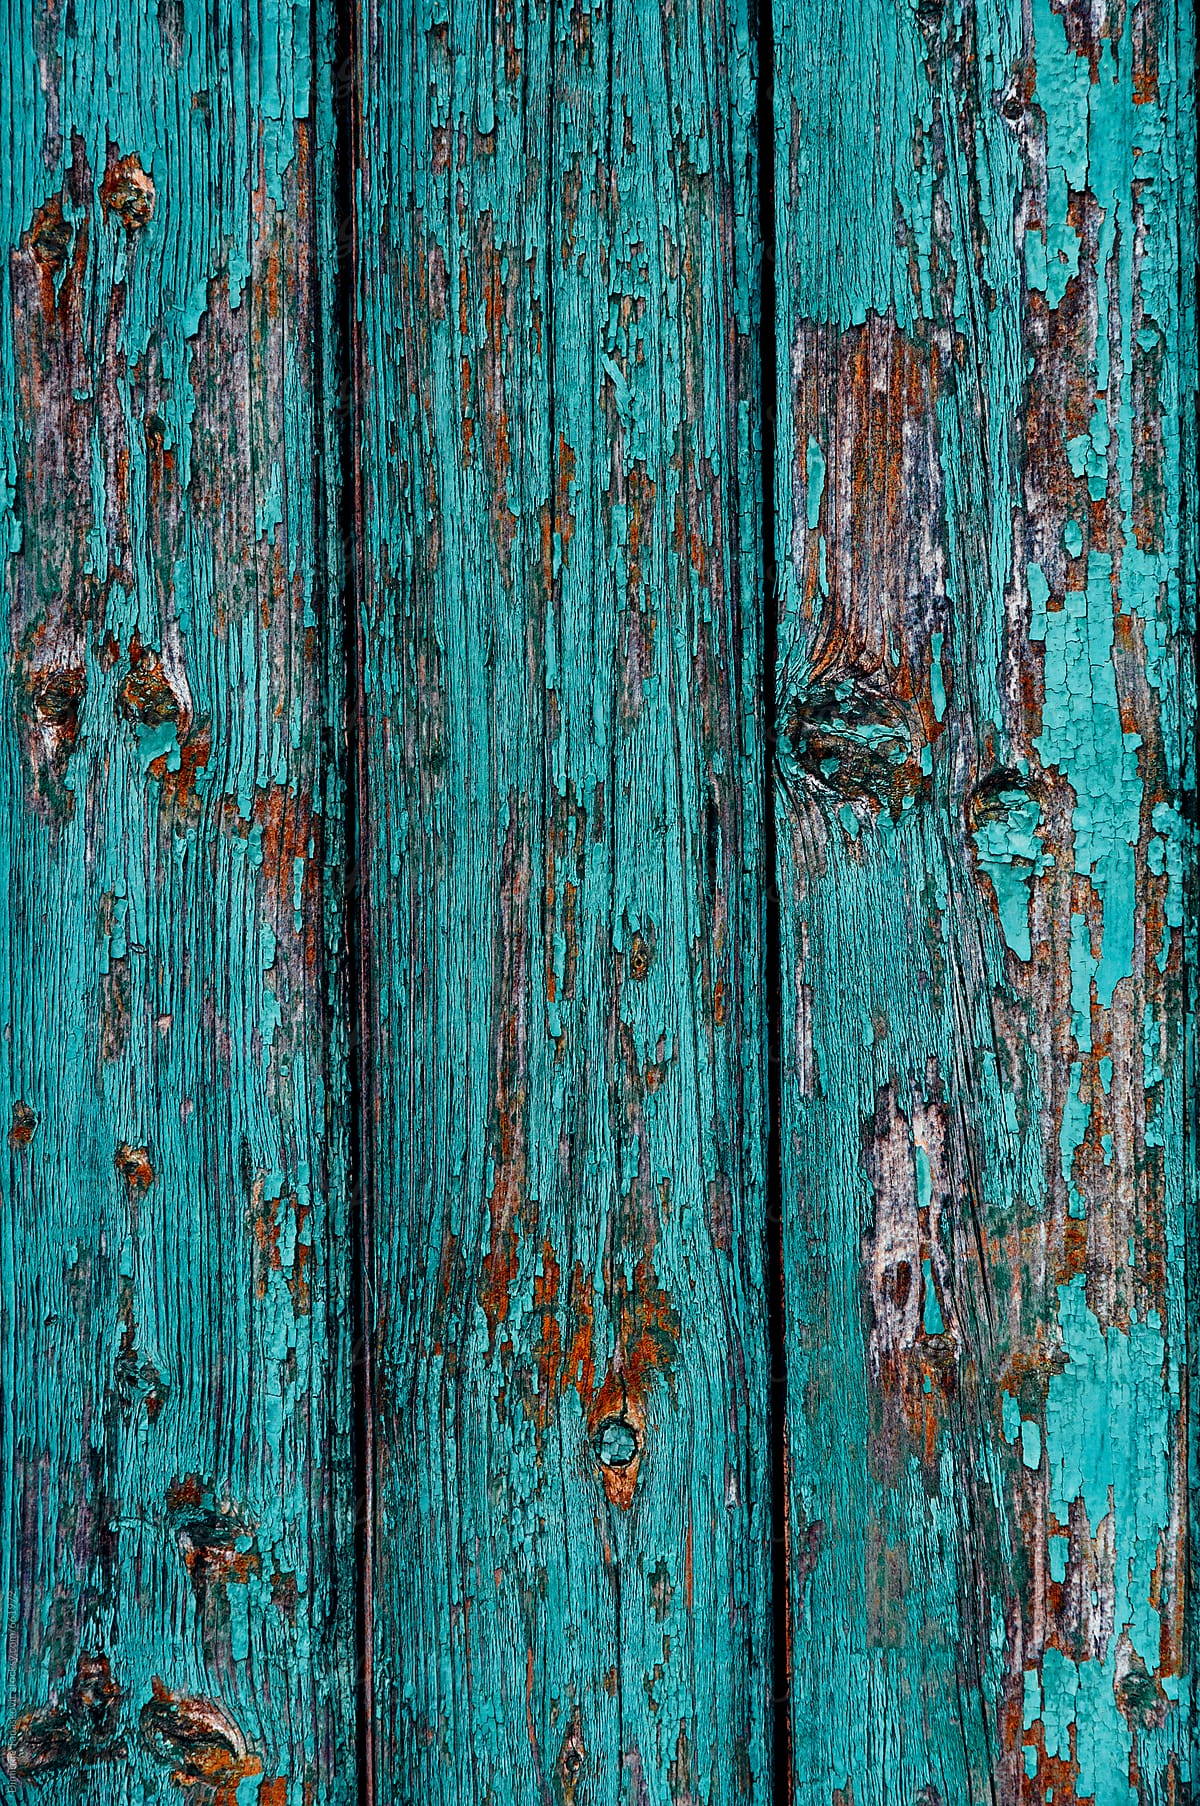 Wood texture background. Old wood painted in blue by Dimitrije Tanaskovic -  Stocksy United